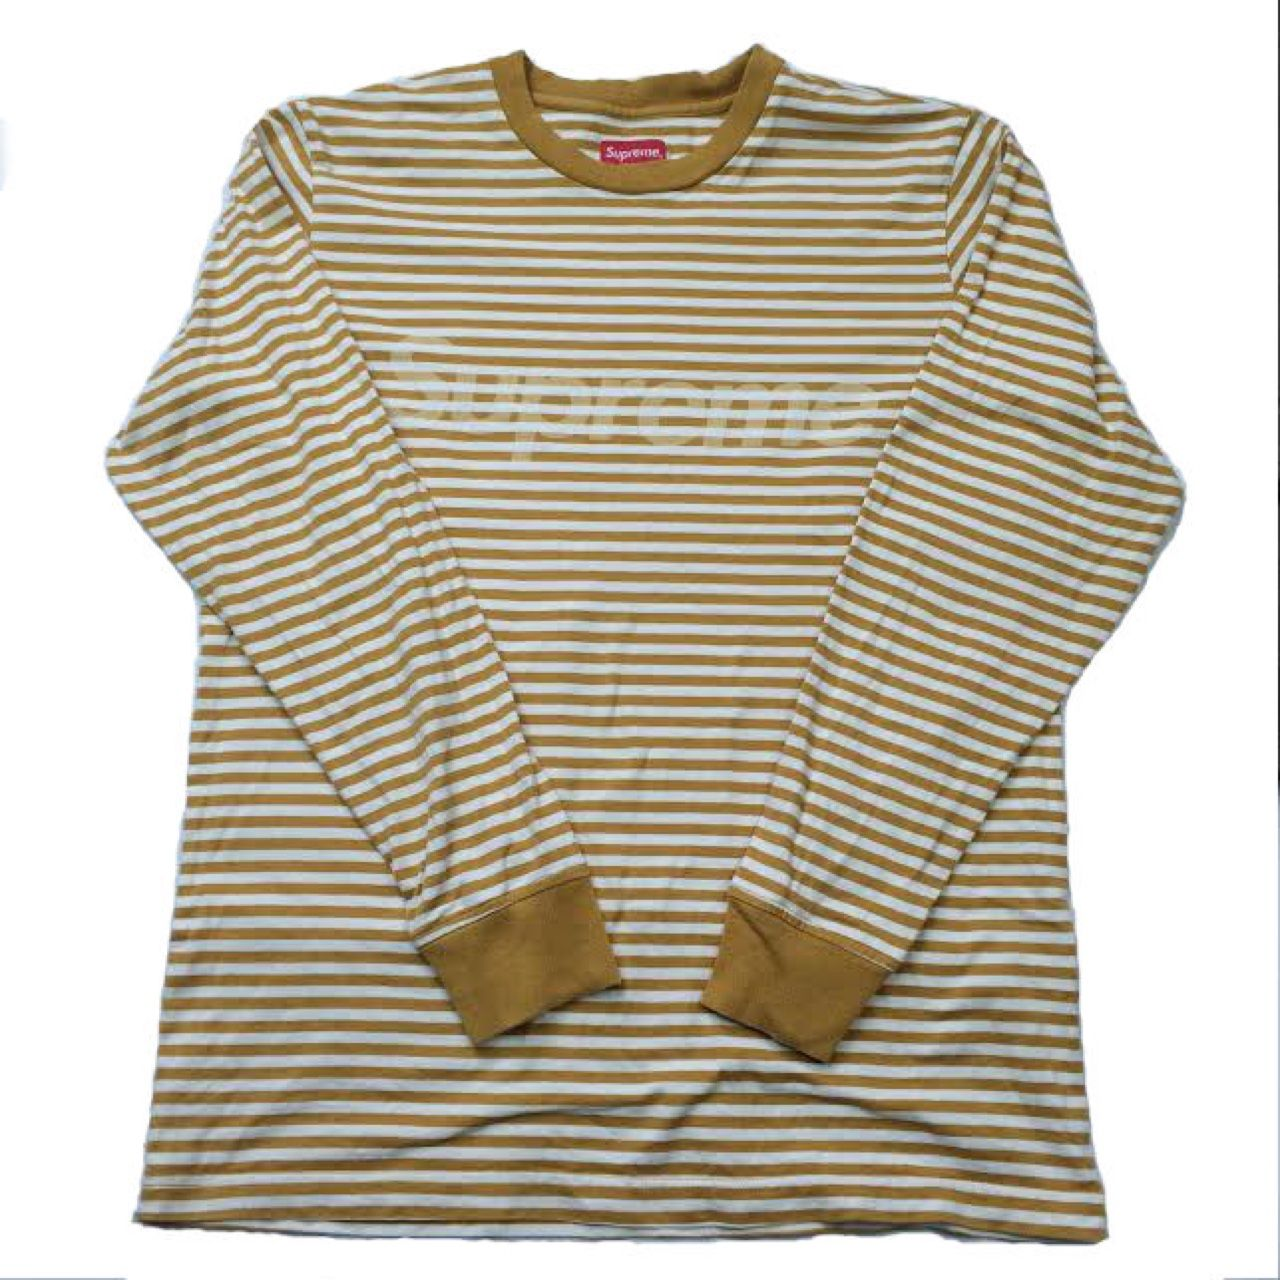 c5318ee59b83 Supreme striped long sleeve • Mustard colour way • Size M • 9/10 condition  • No offers - Depop